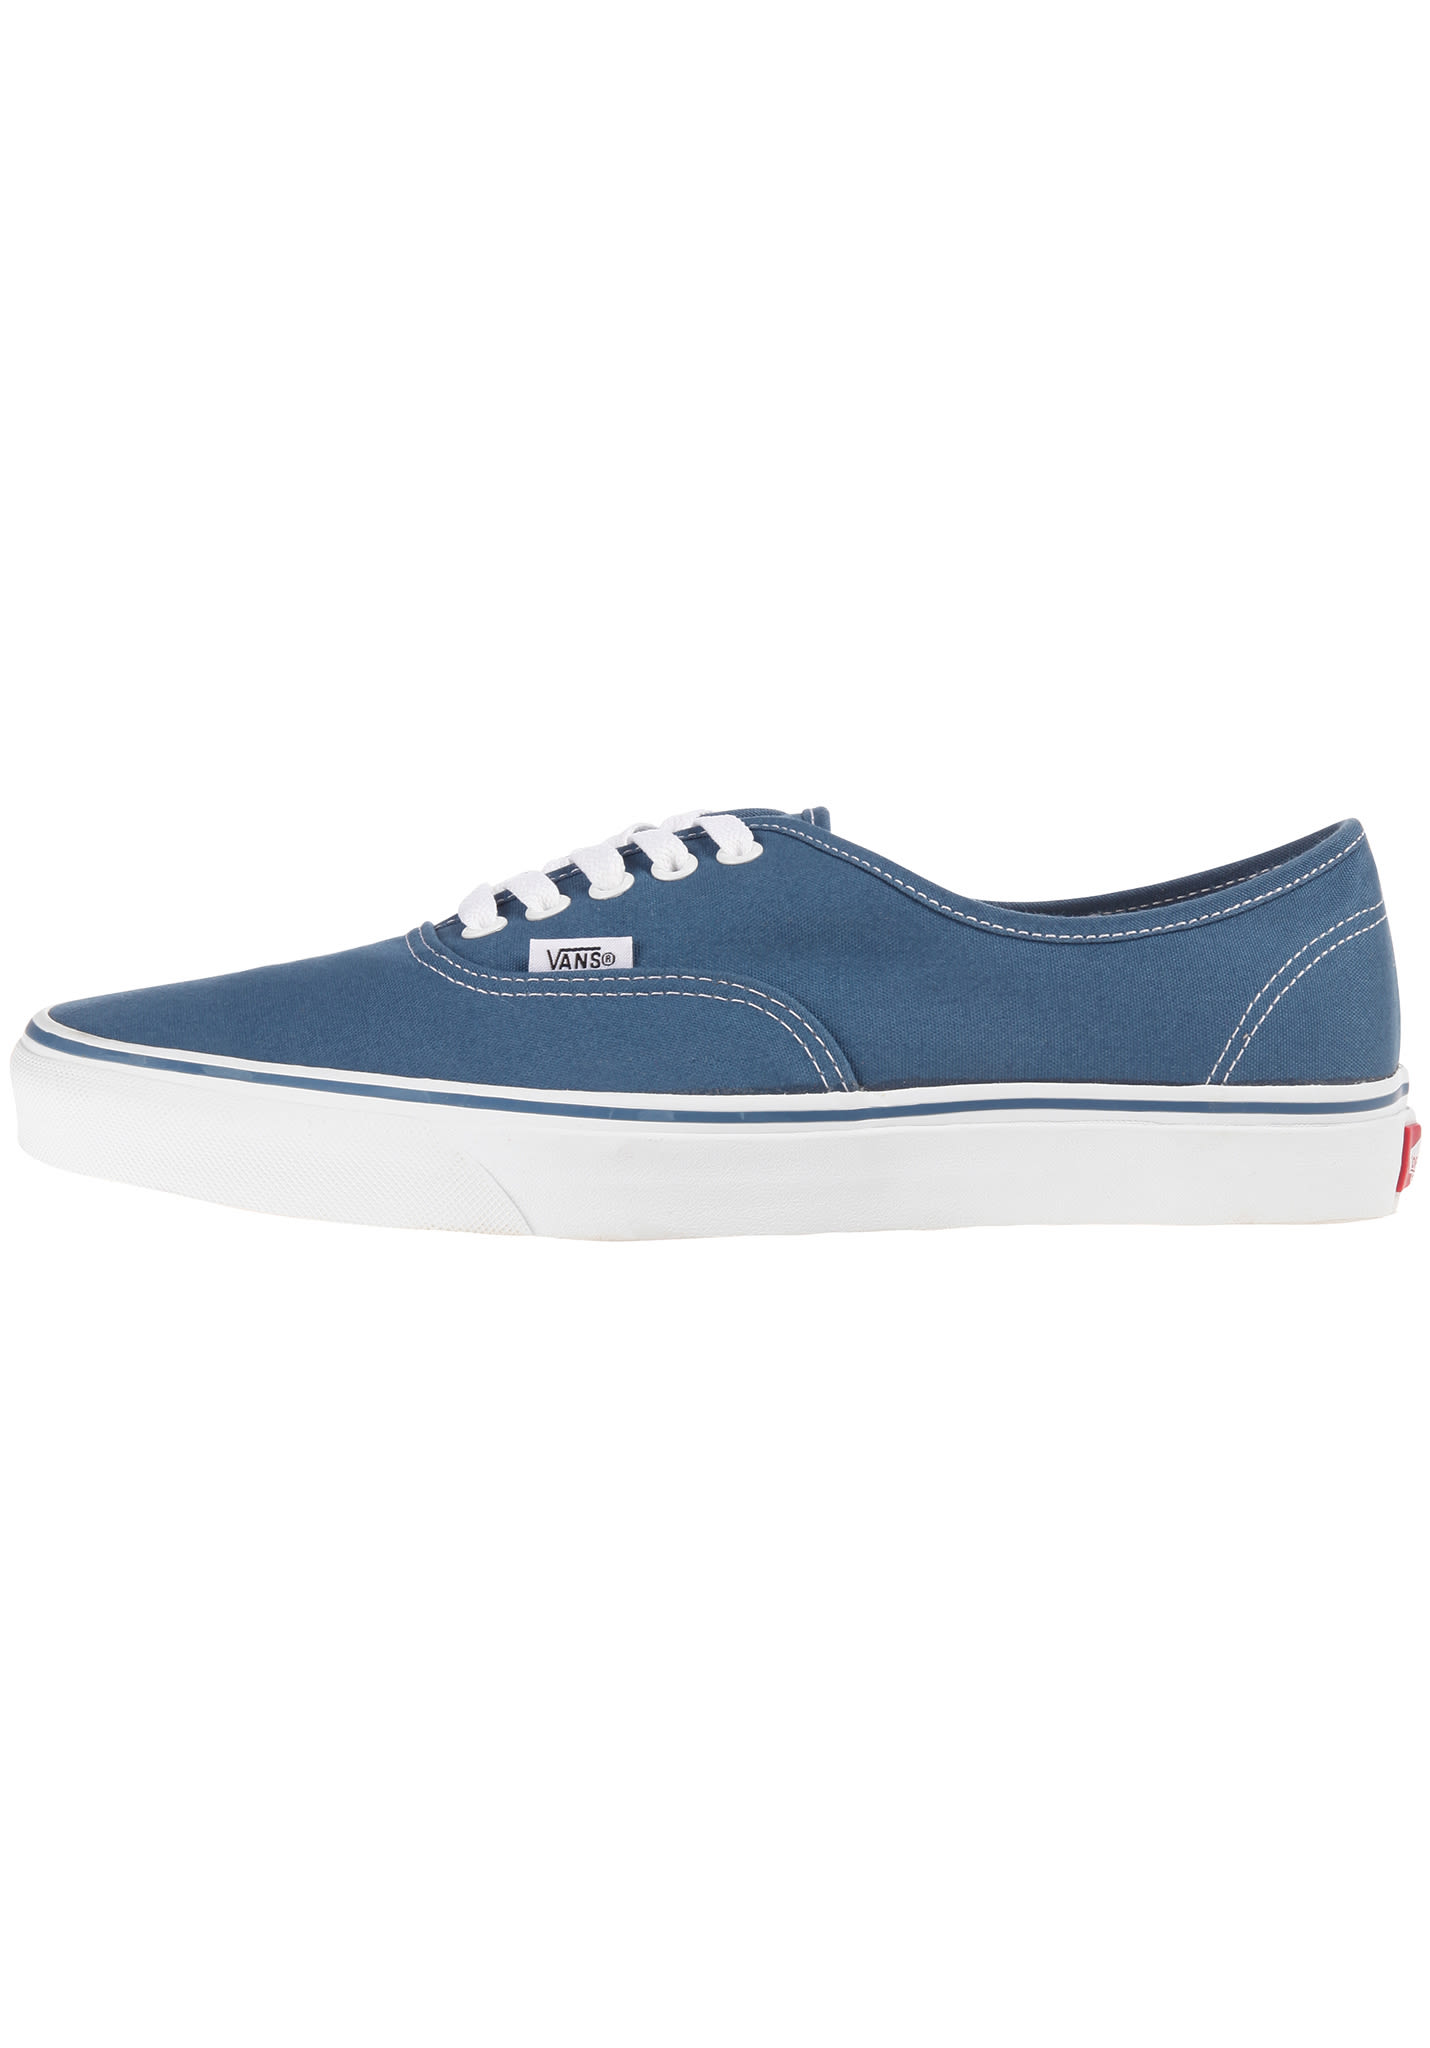 VANS Authentic - Sneaker - Blau